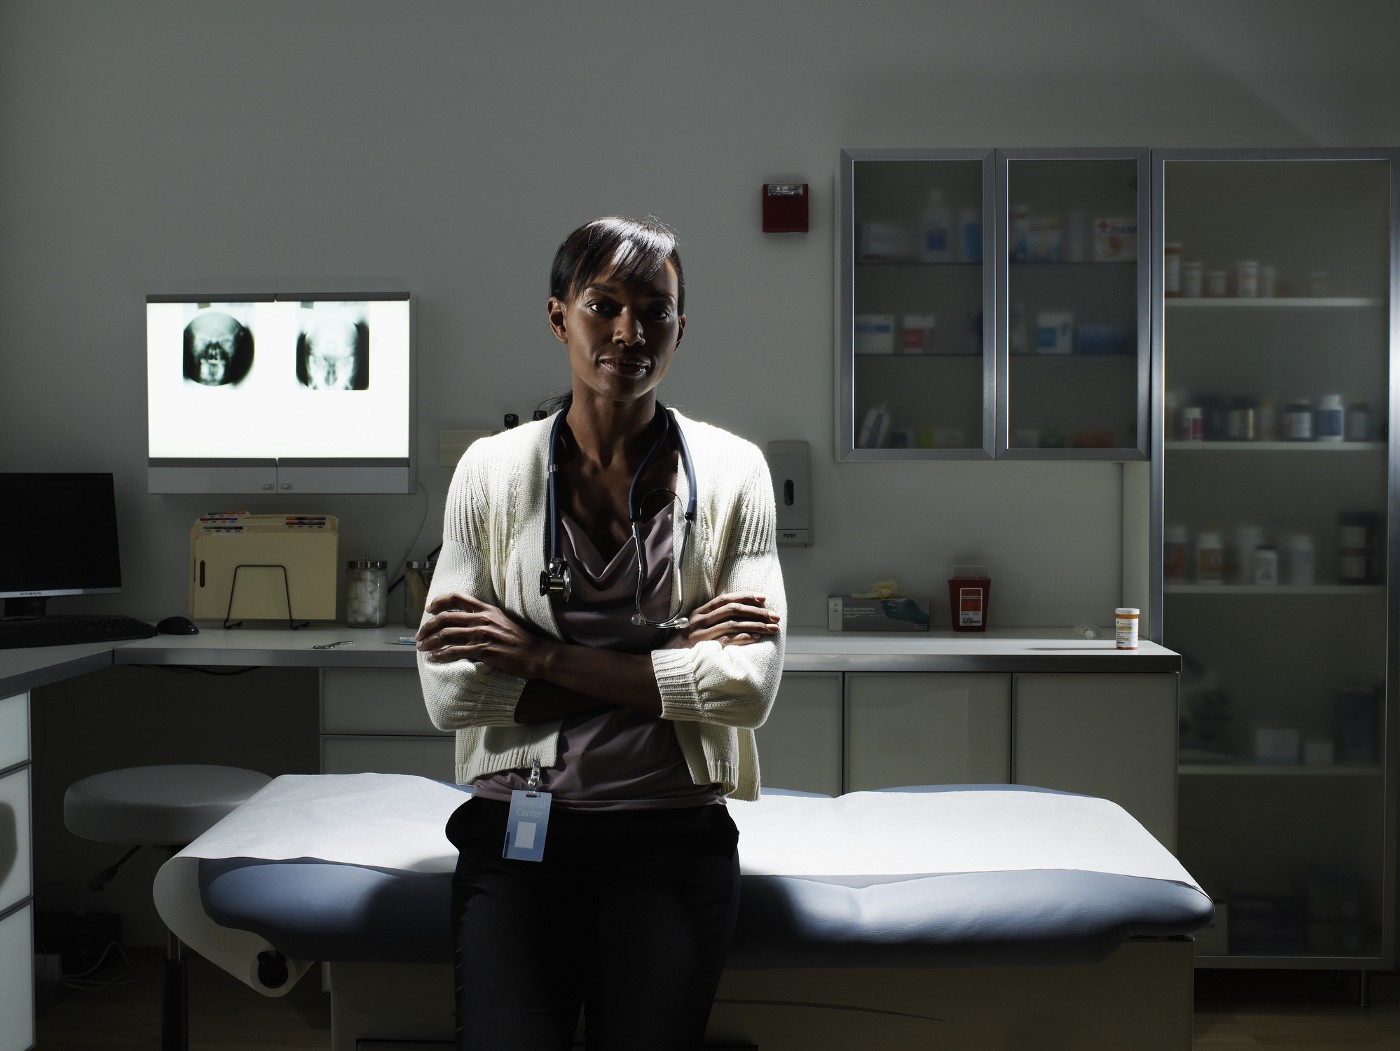 A photo of a Black female doctor sitting in an examination room, arms crossed.